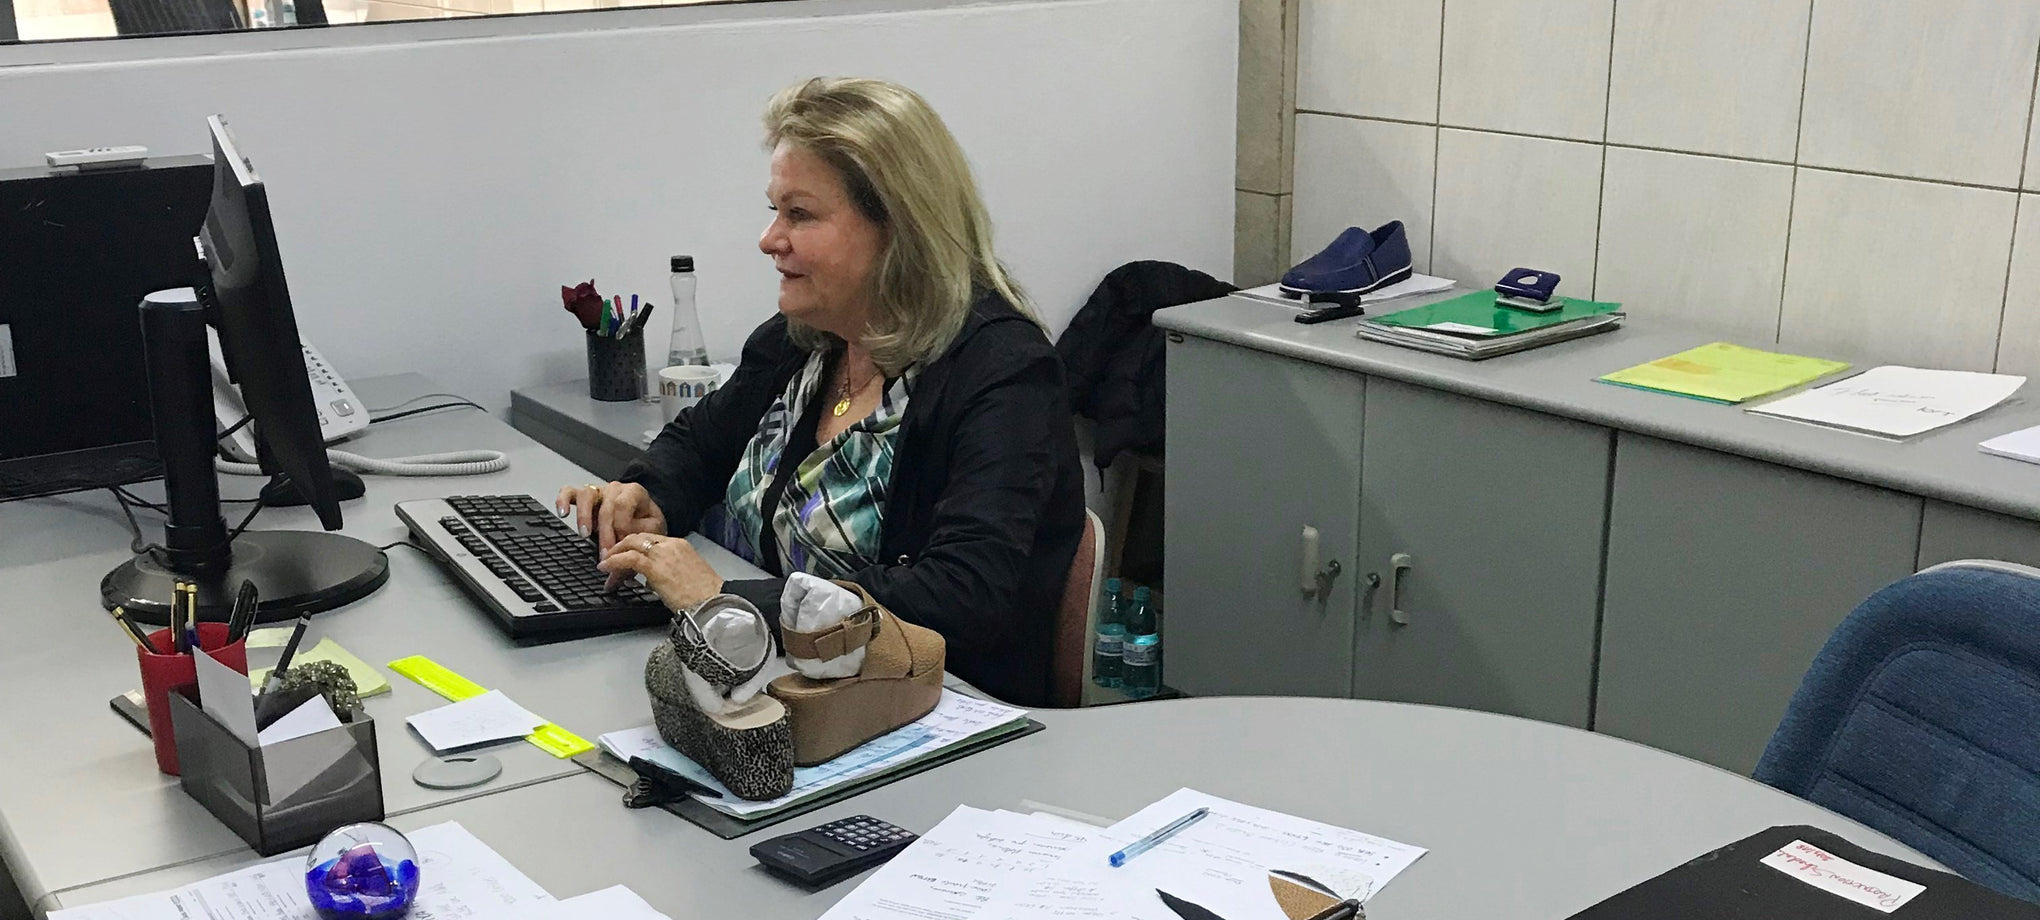 Meet Suzana from our Brazil Shoe Factory